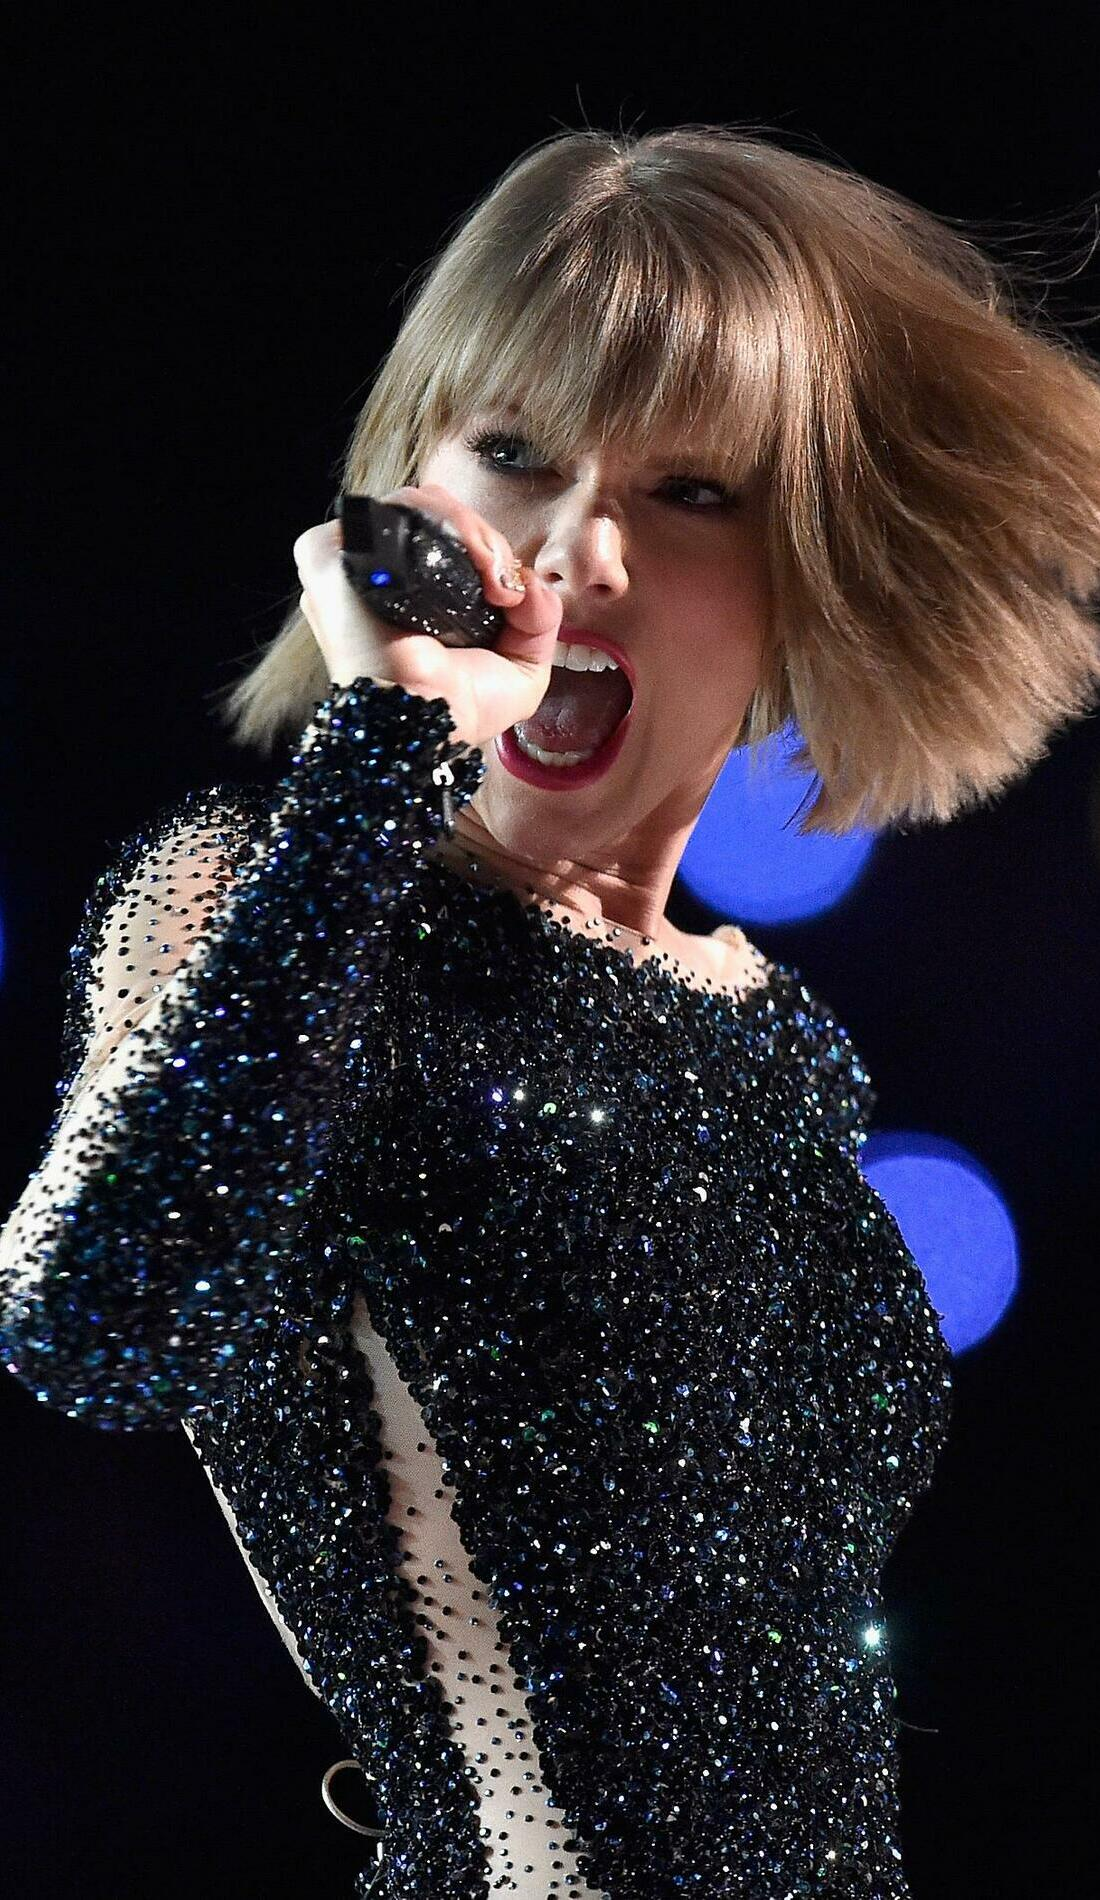 A Taylor Swift live event